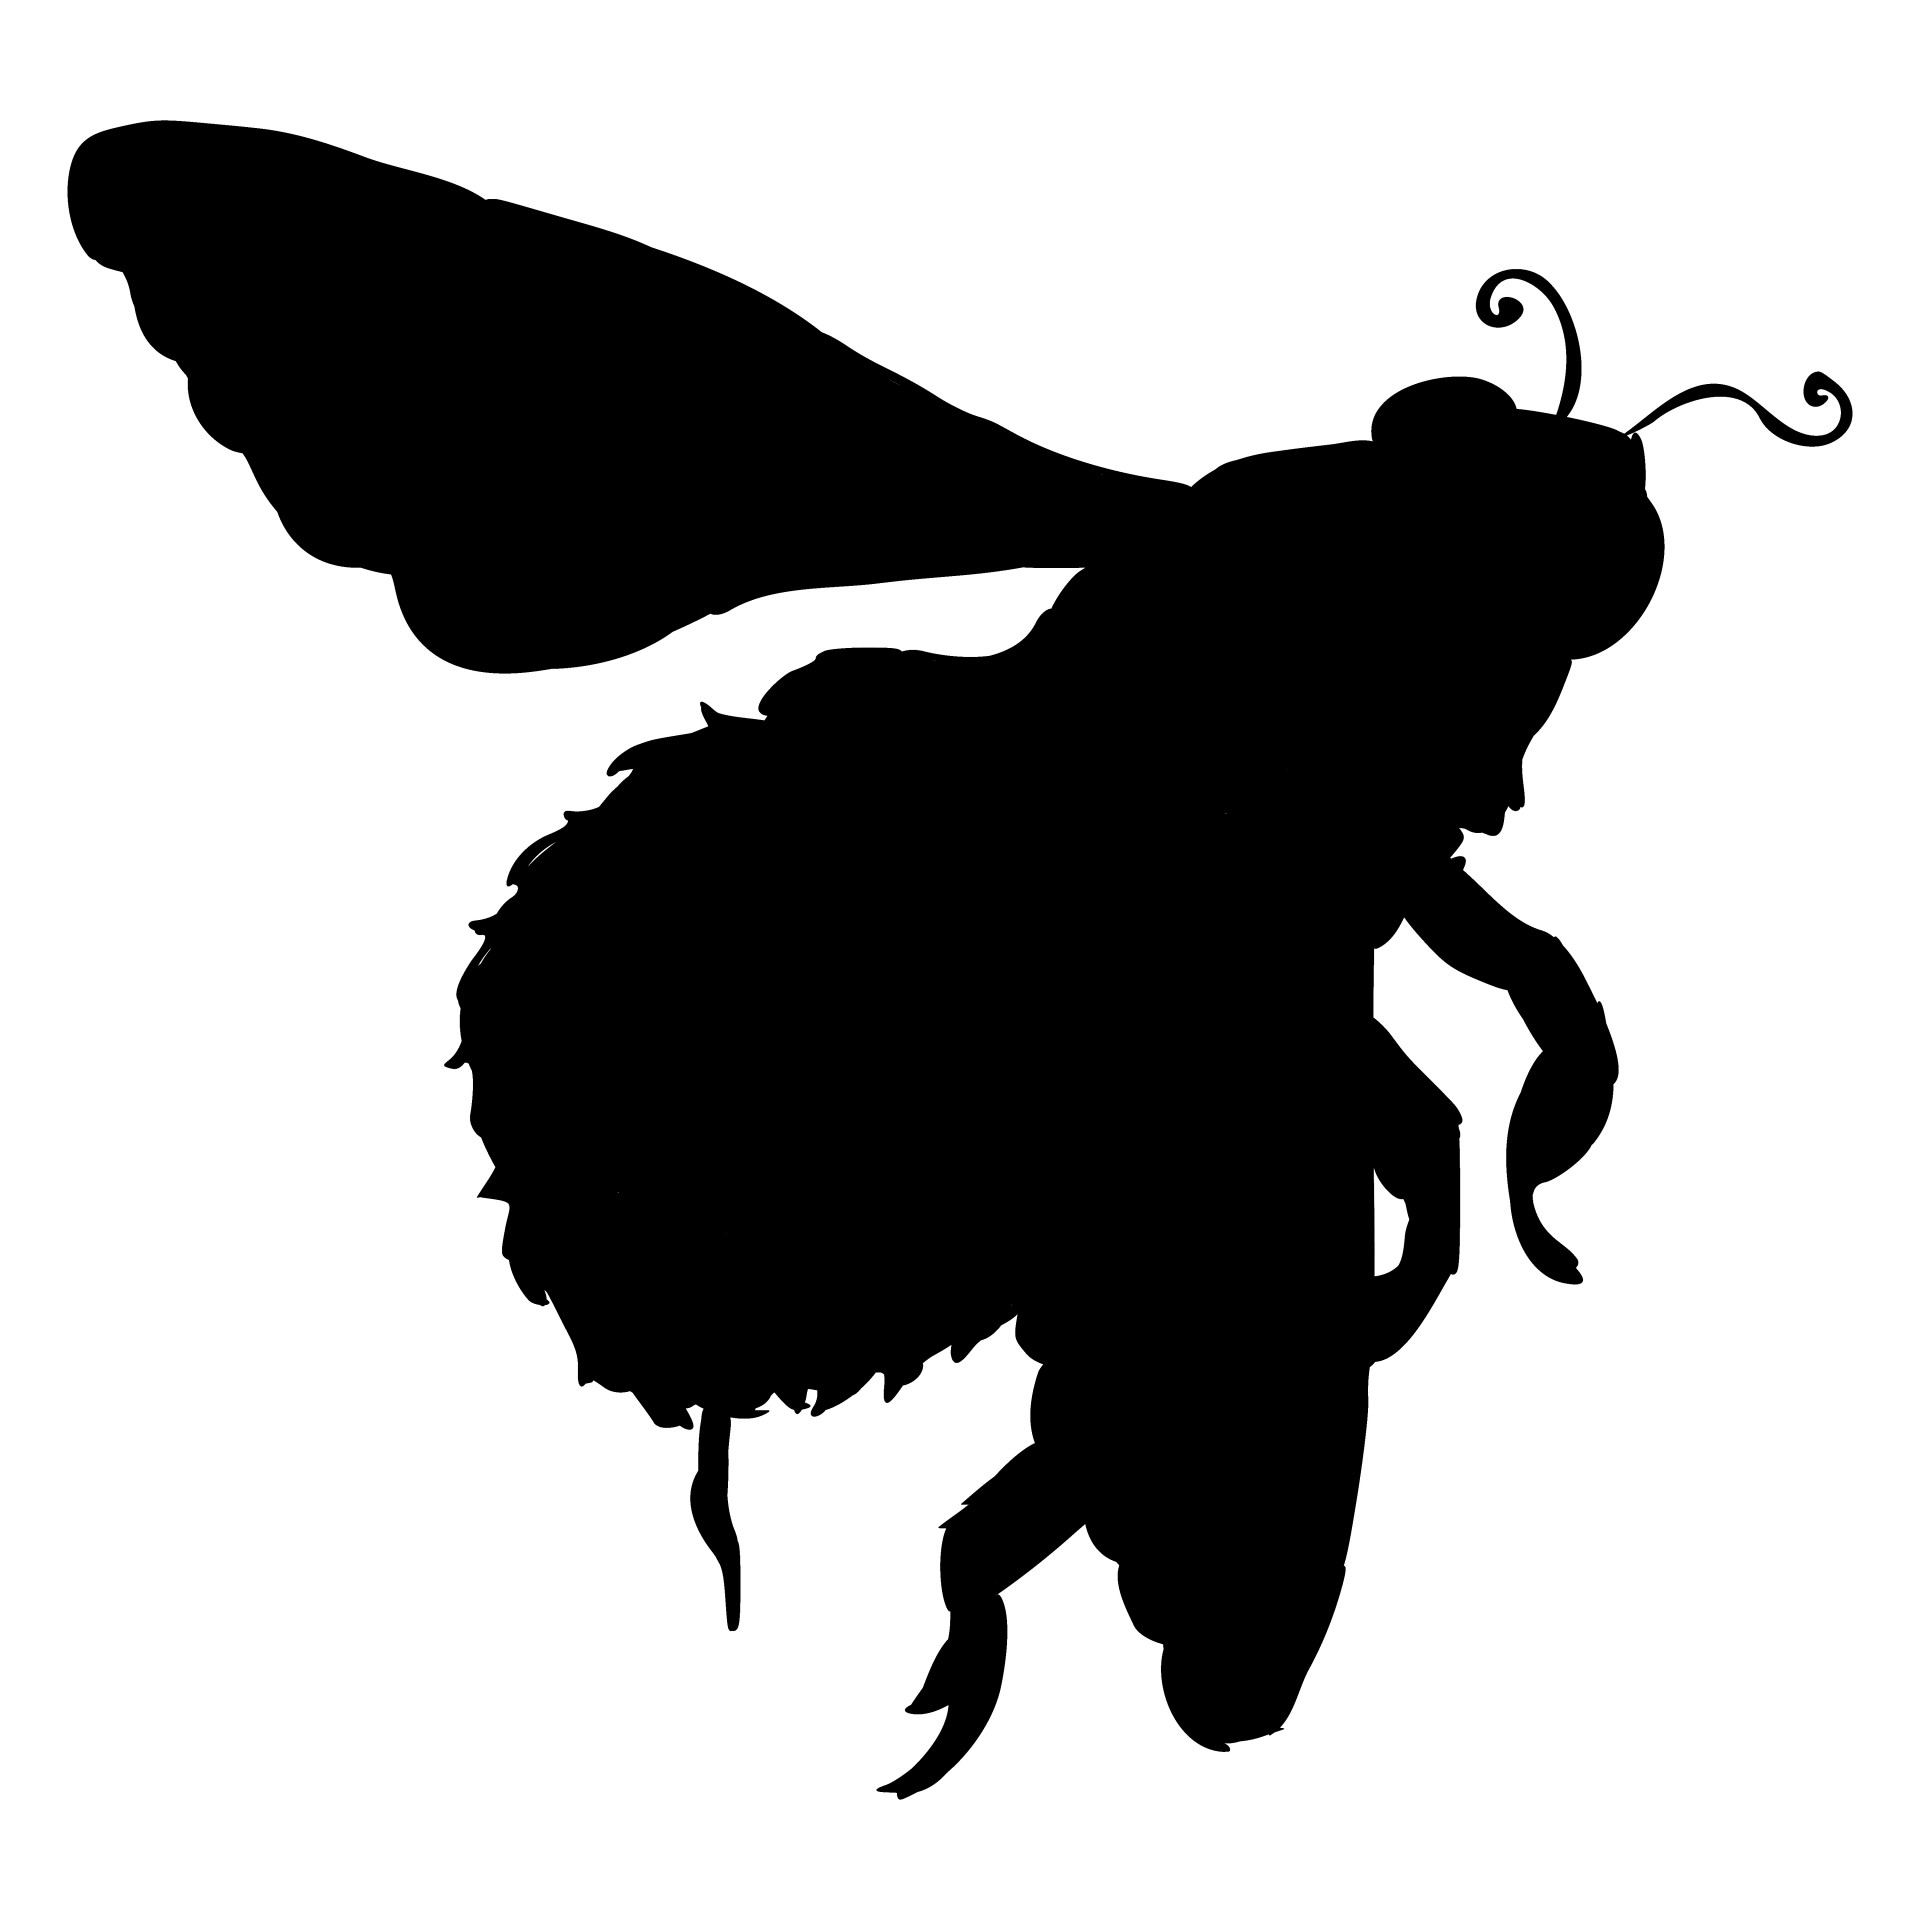 1920x1920 Silhouette Of A Bumble Bee Free Stock Photo